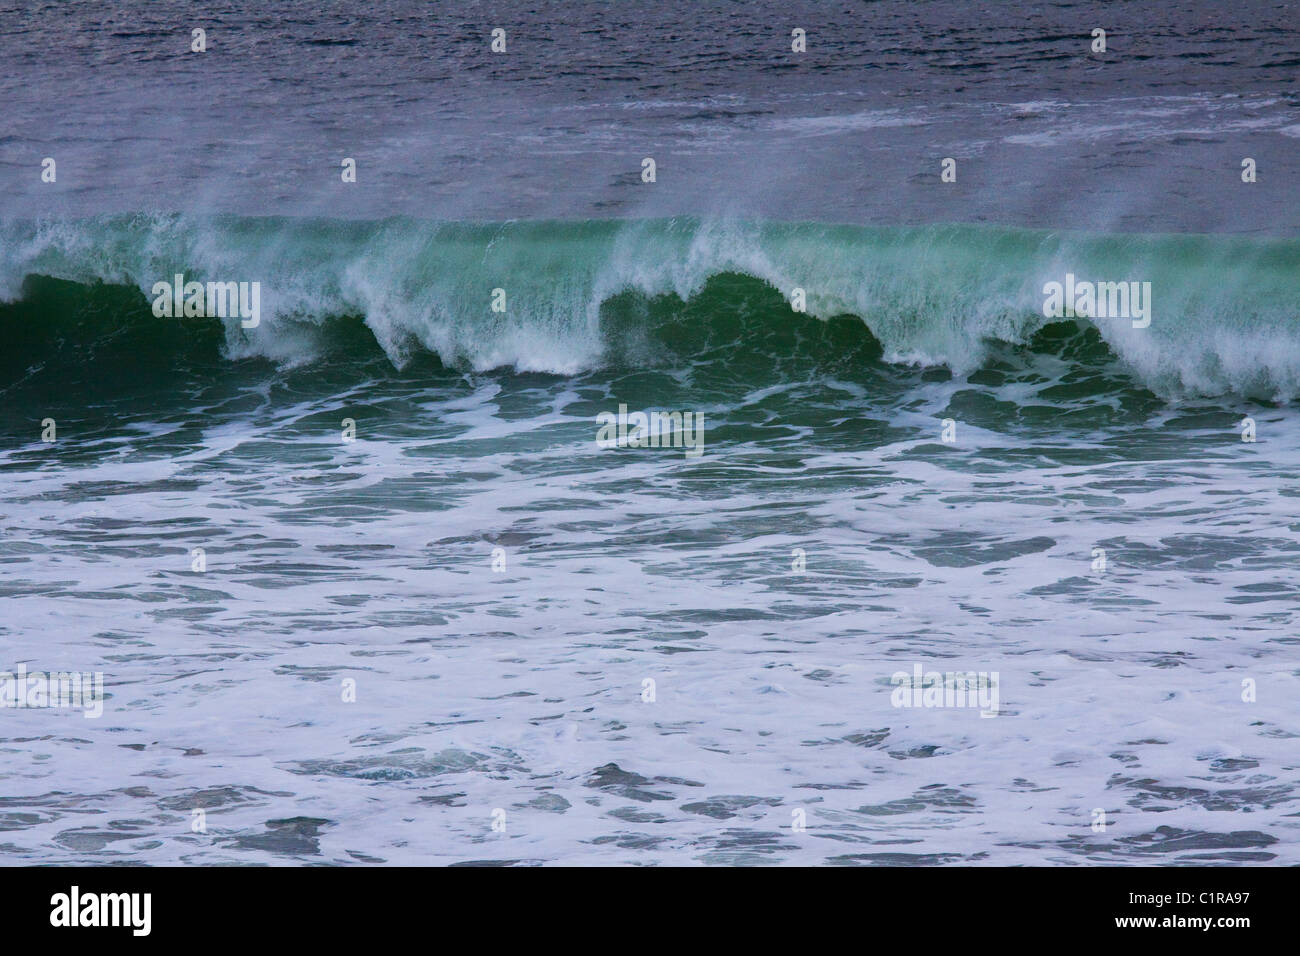 Breaking wave with the crest blown back by wind, Monterey Bay, Central California, USA - Stock Image